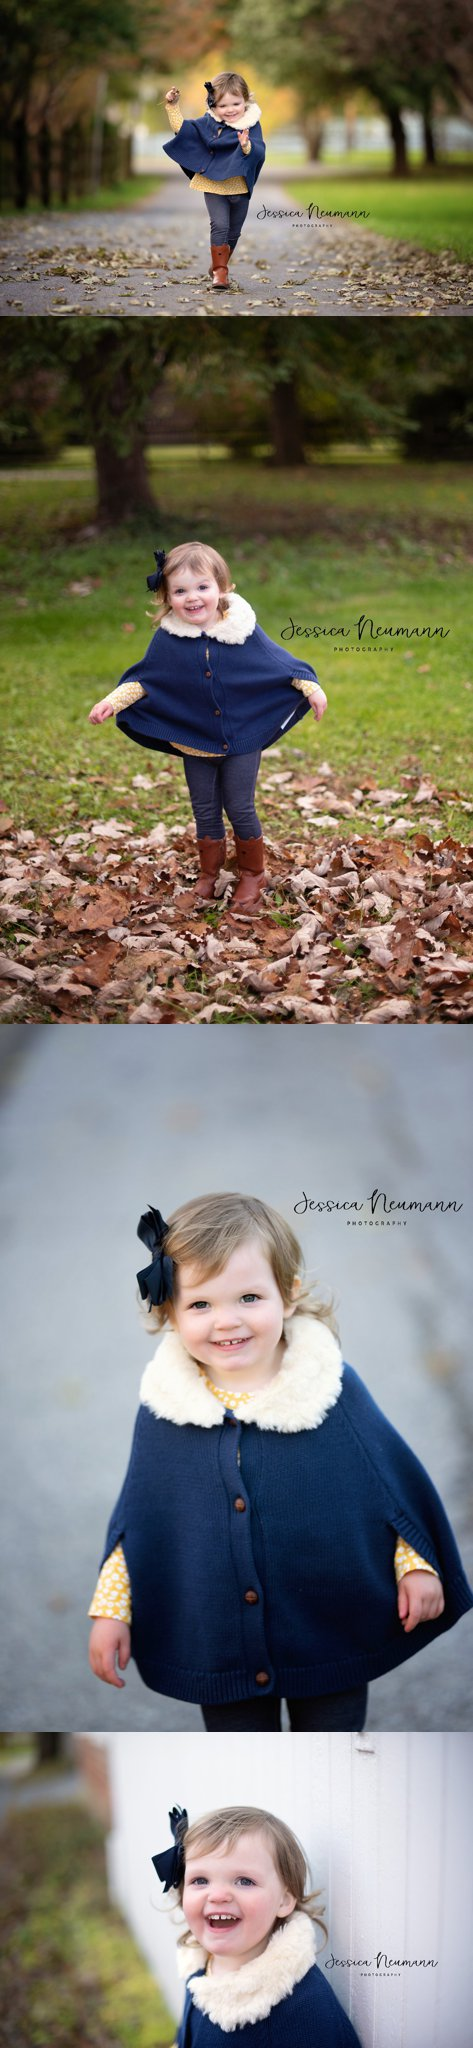 Outgoing 2 year old photo shoot in New Market, MD